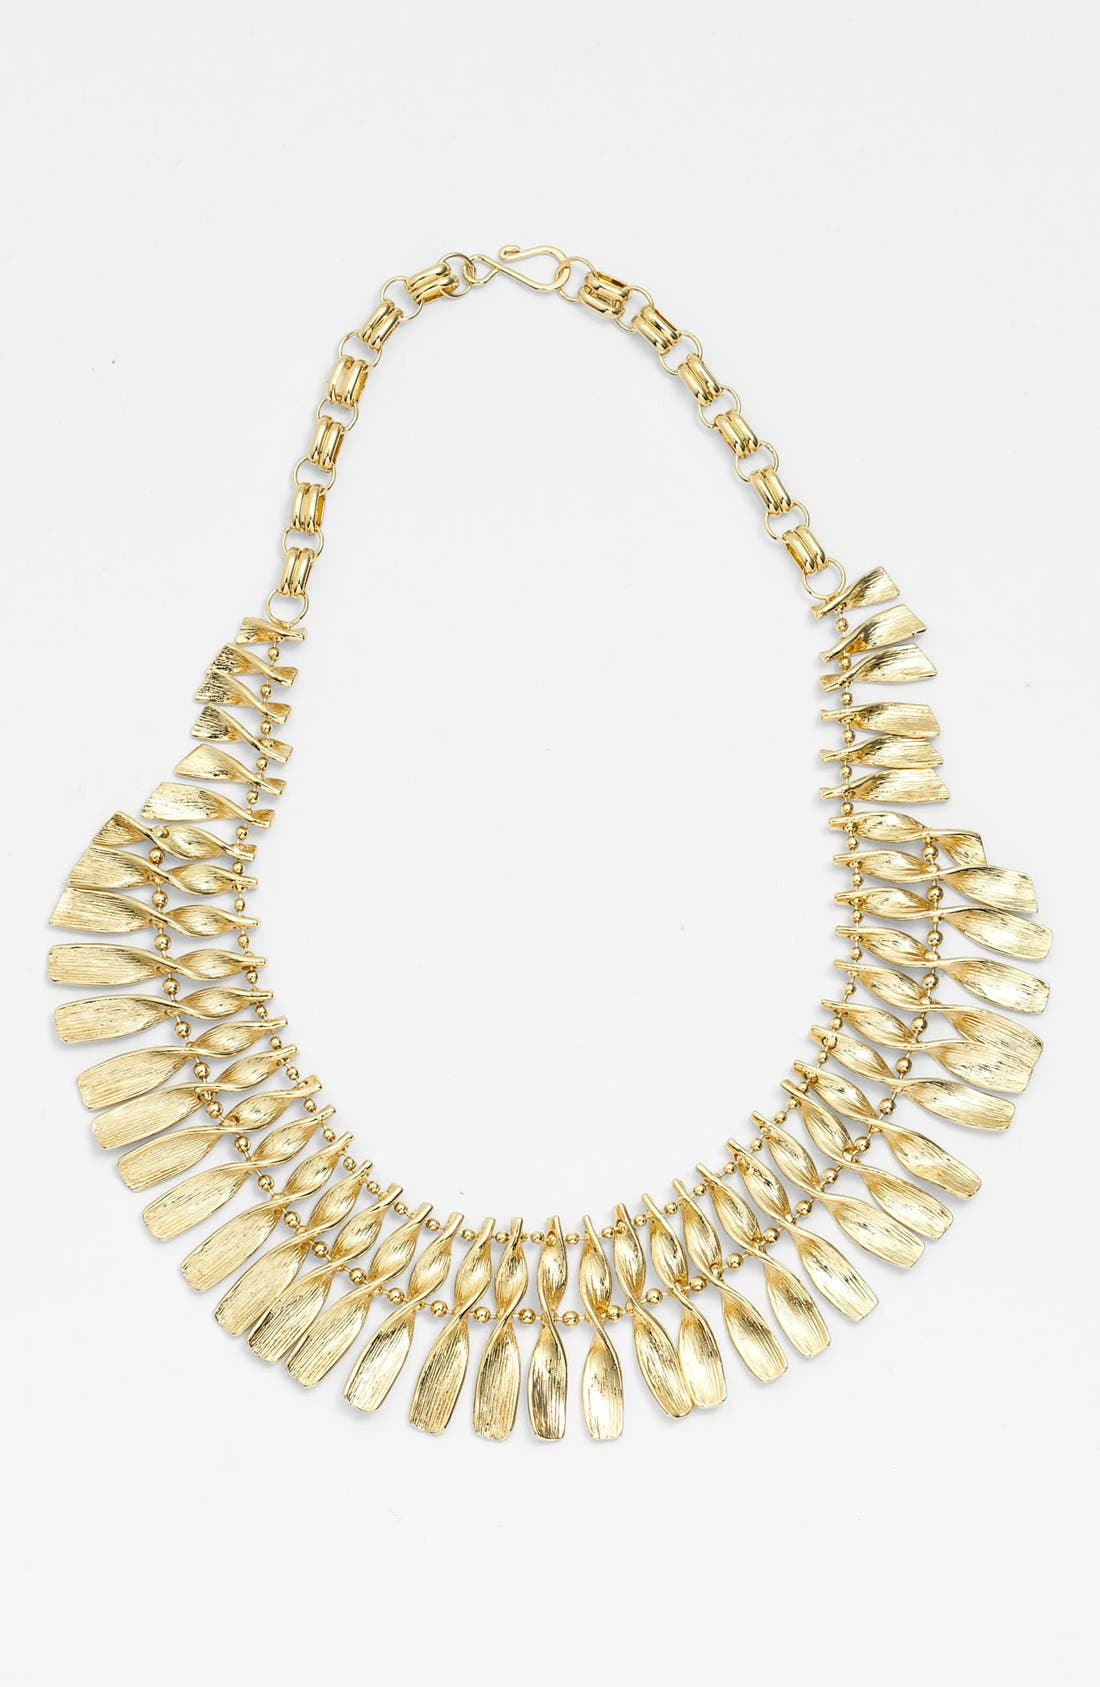 Alternate Image 1 Selected - Kendra Scott 'Sandy' Bib Necklace